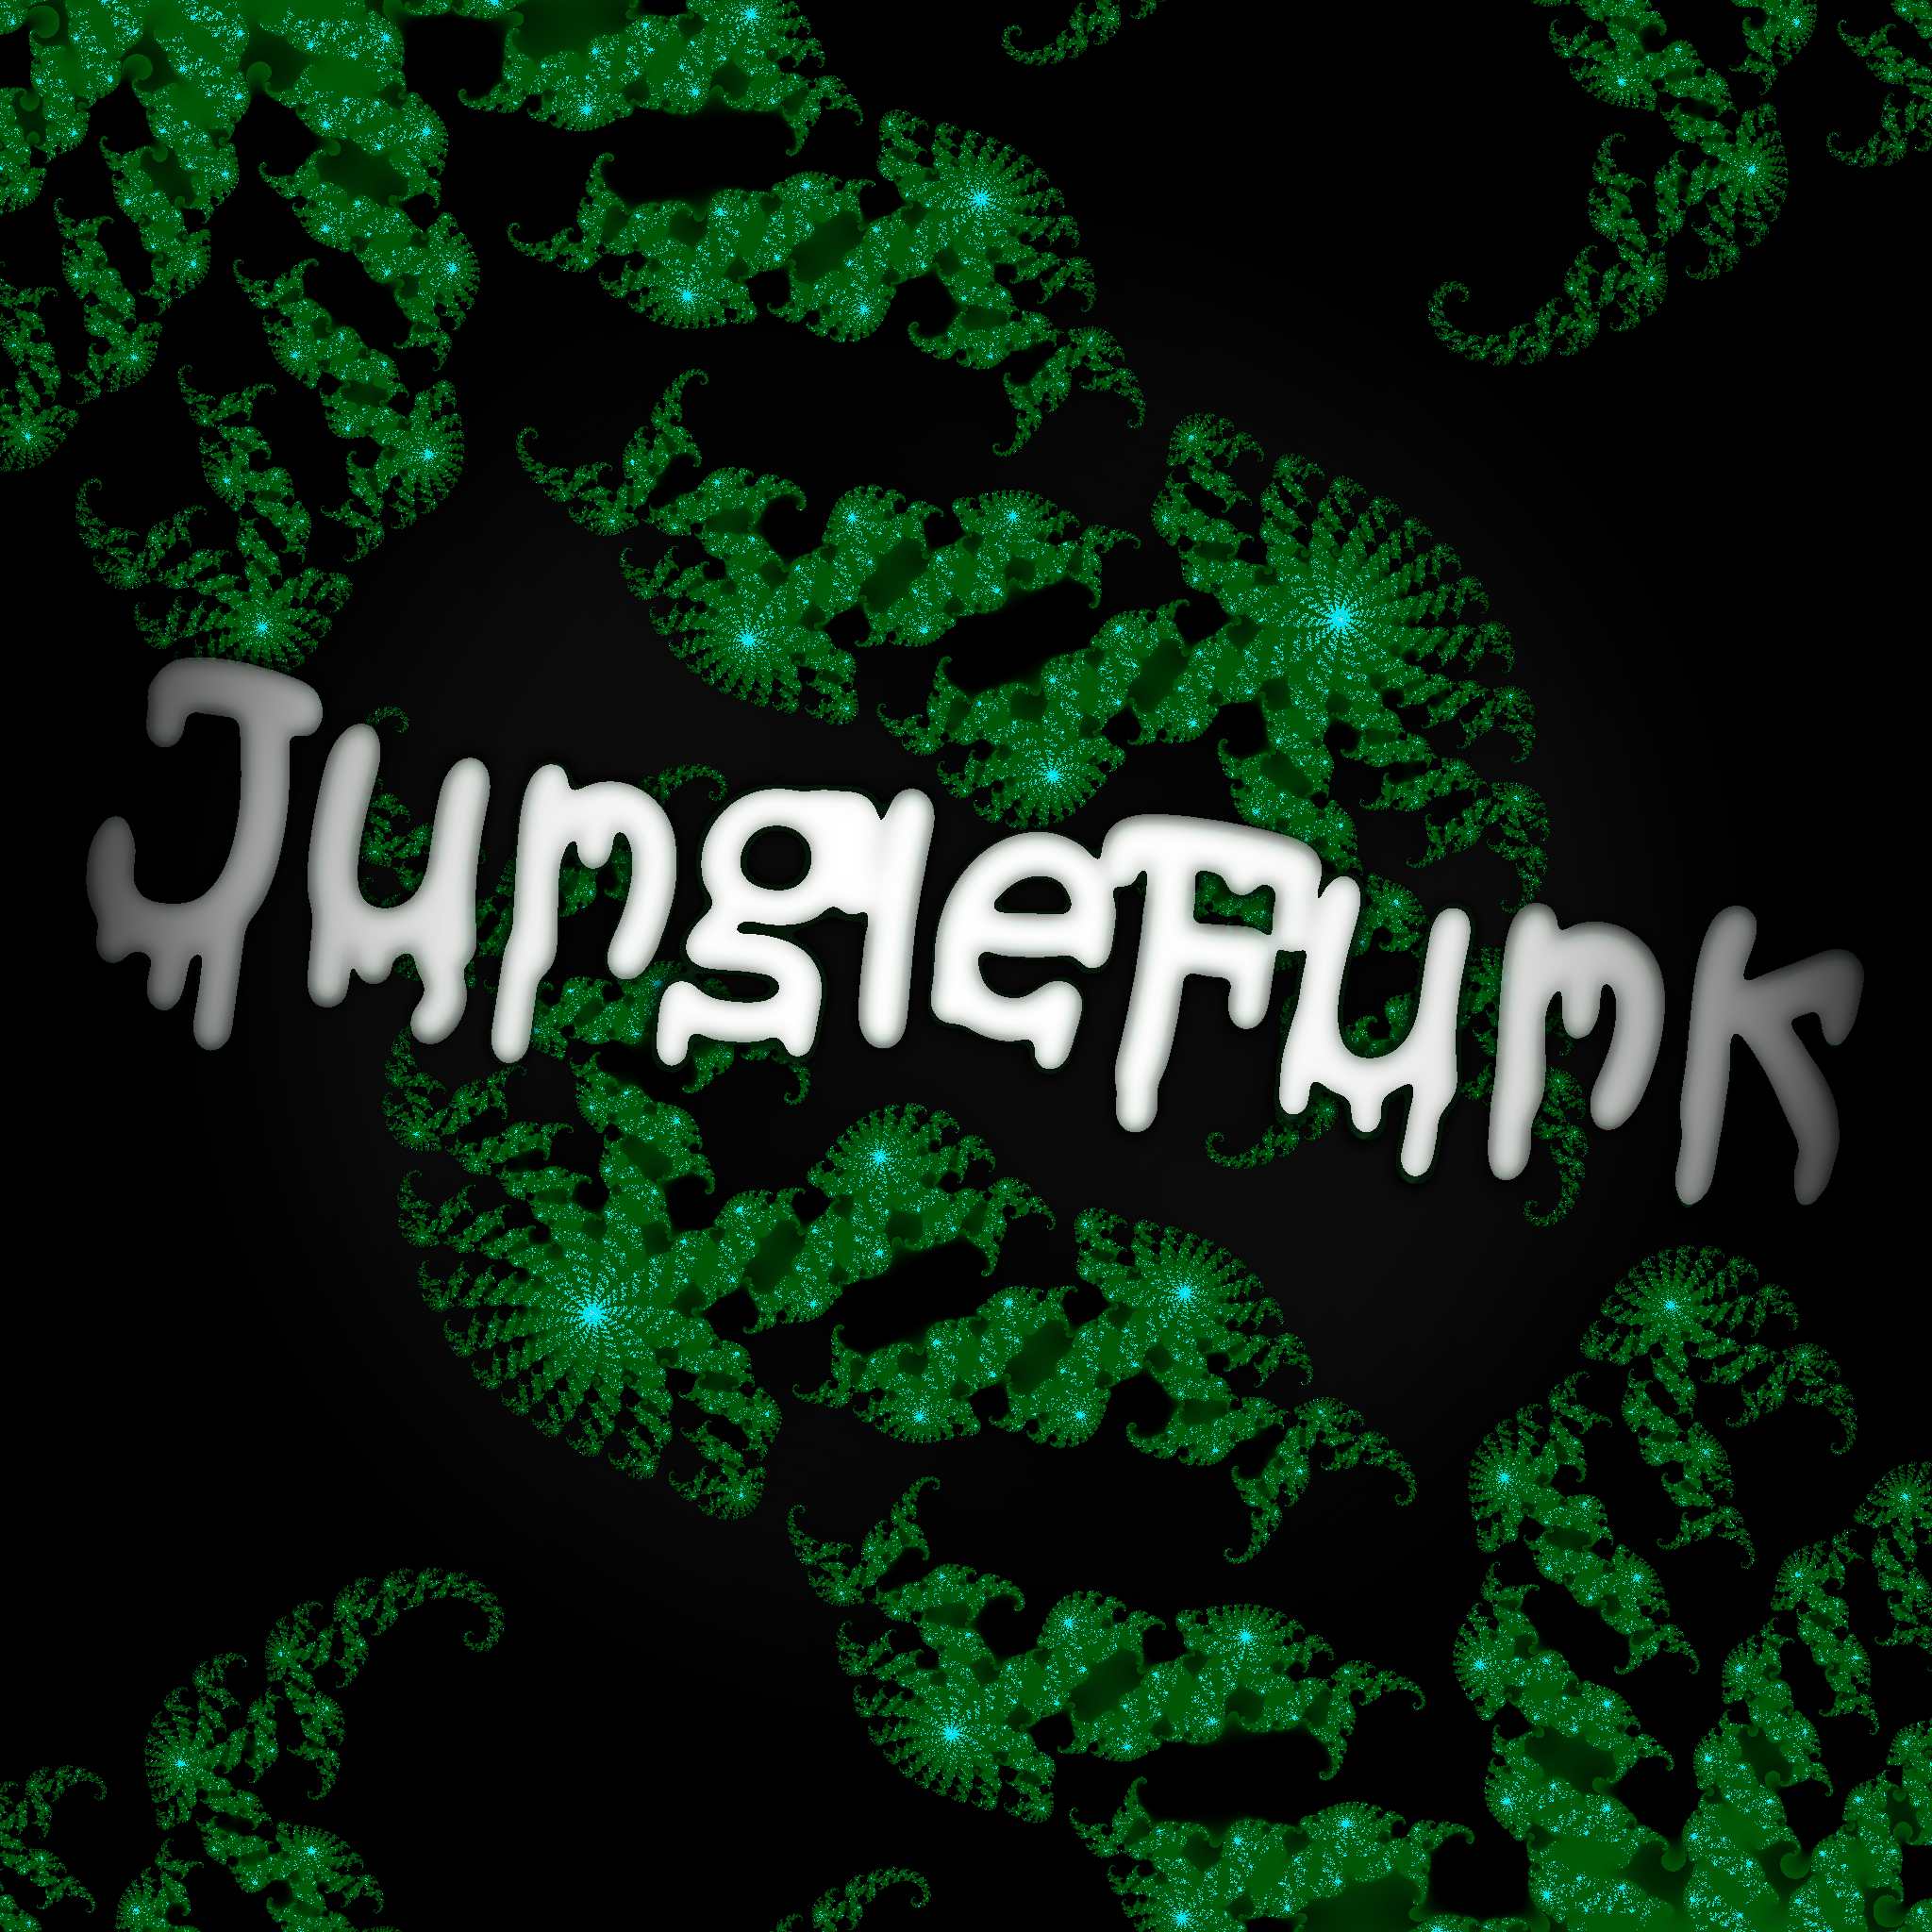 Junglefunk Album cover art.